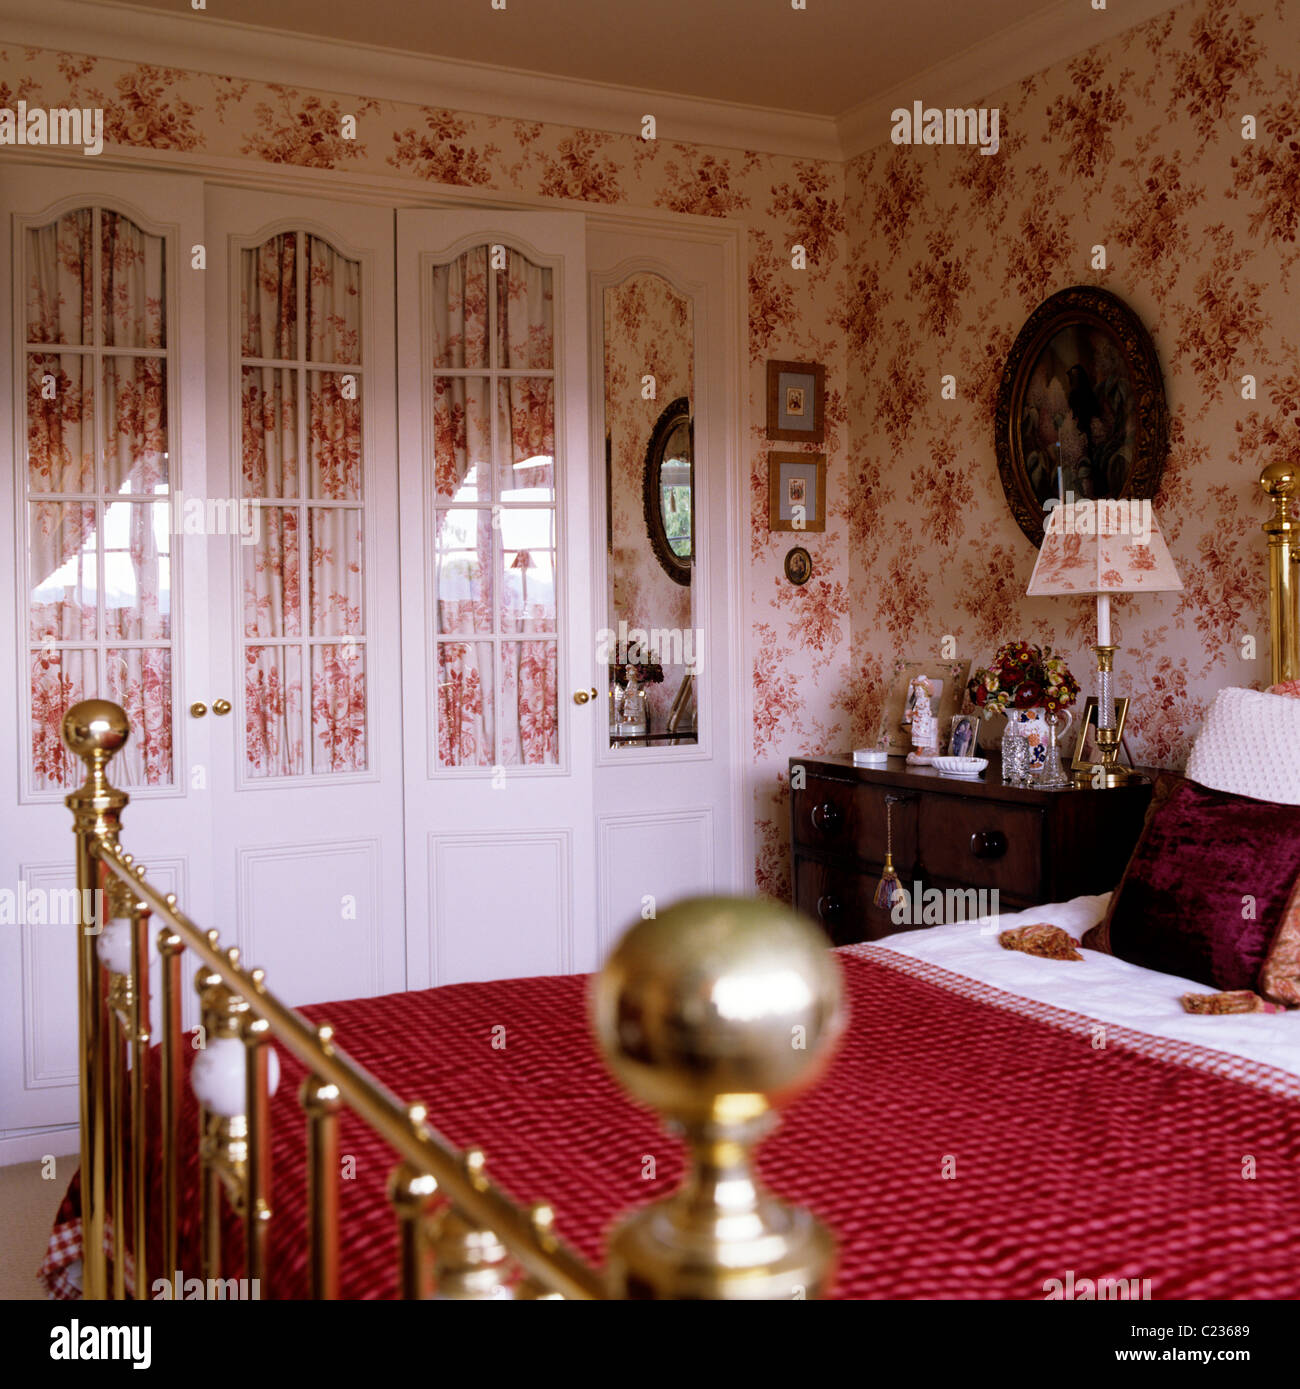 Red Quilt On Brass Framed Bed In Bedroom With Toile De Jouy Wallpaper    Stock Image